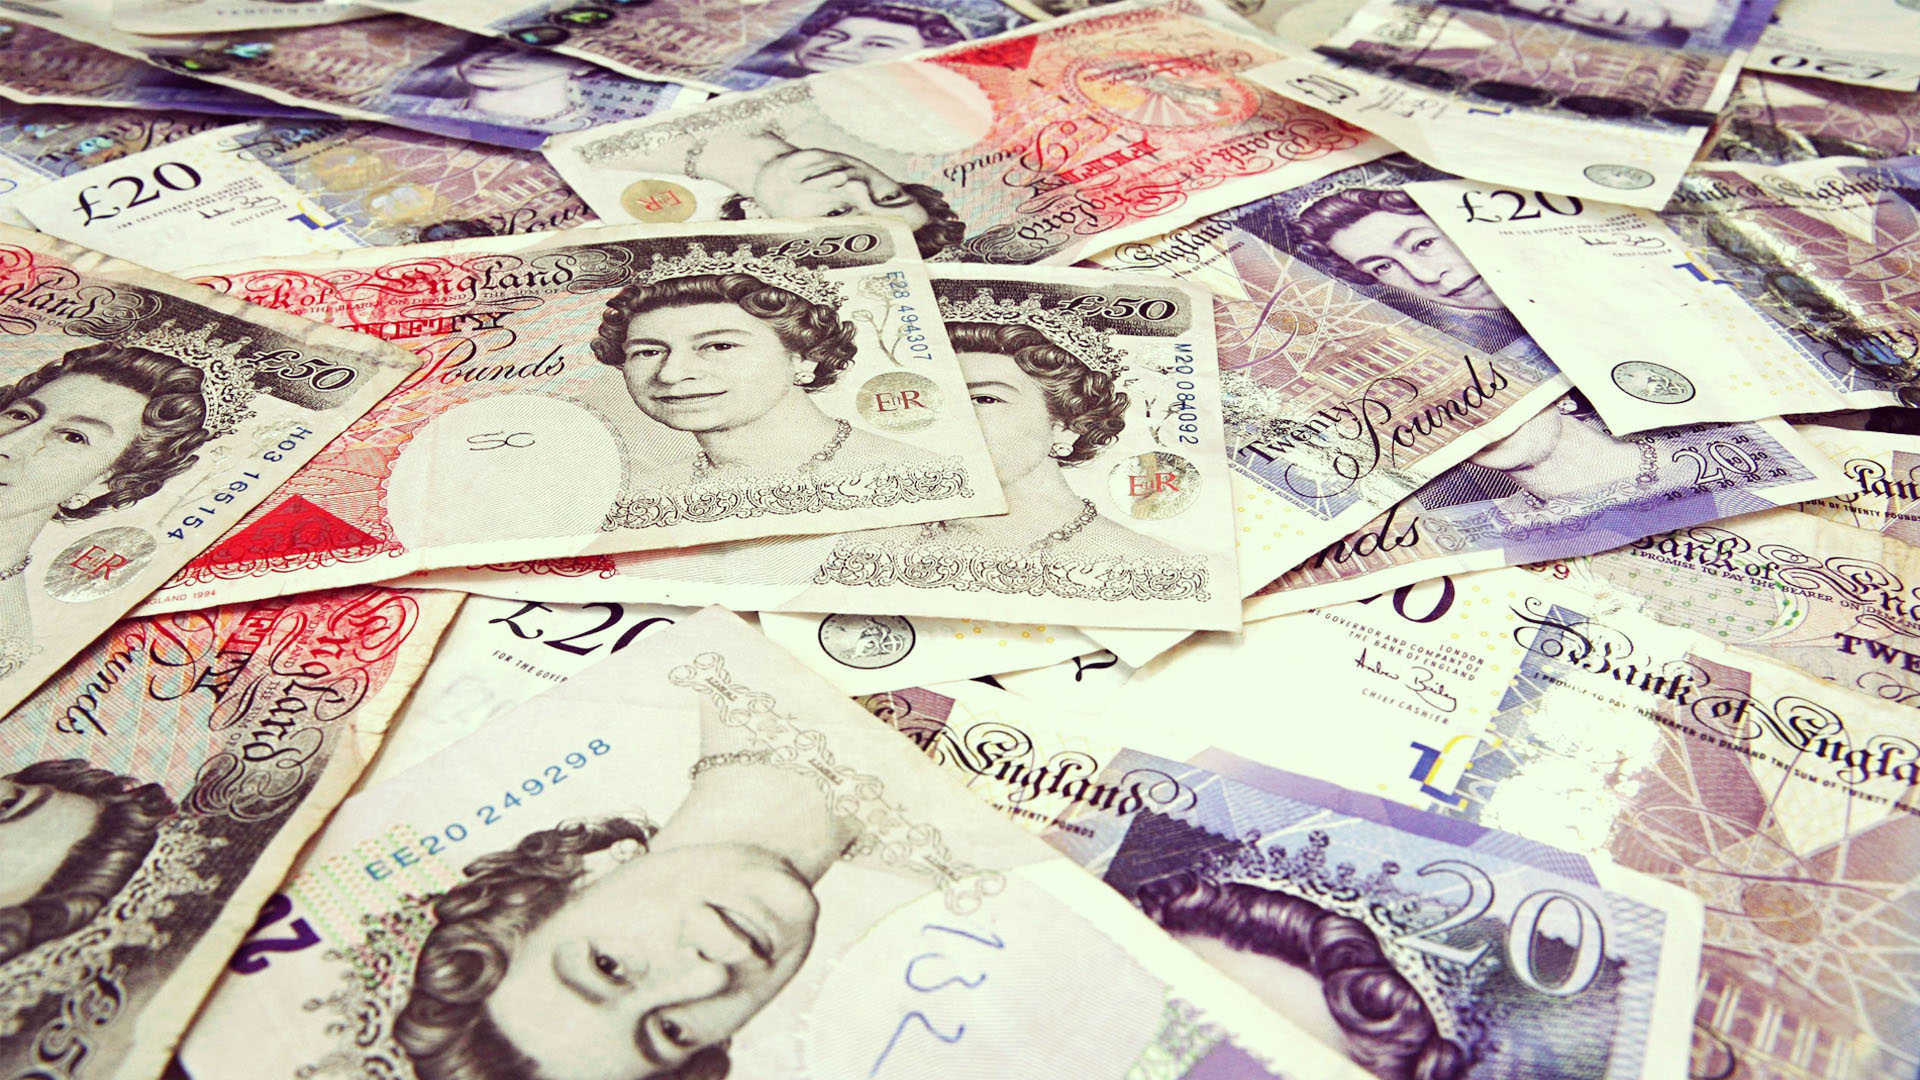 Extra funding secured to tackle waste crime